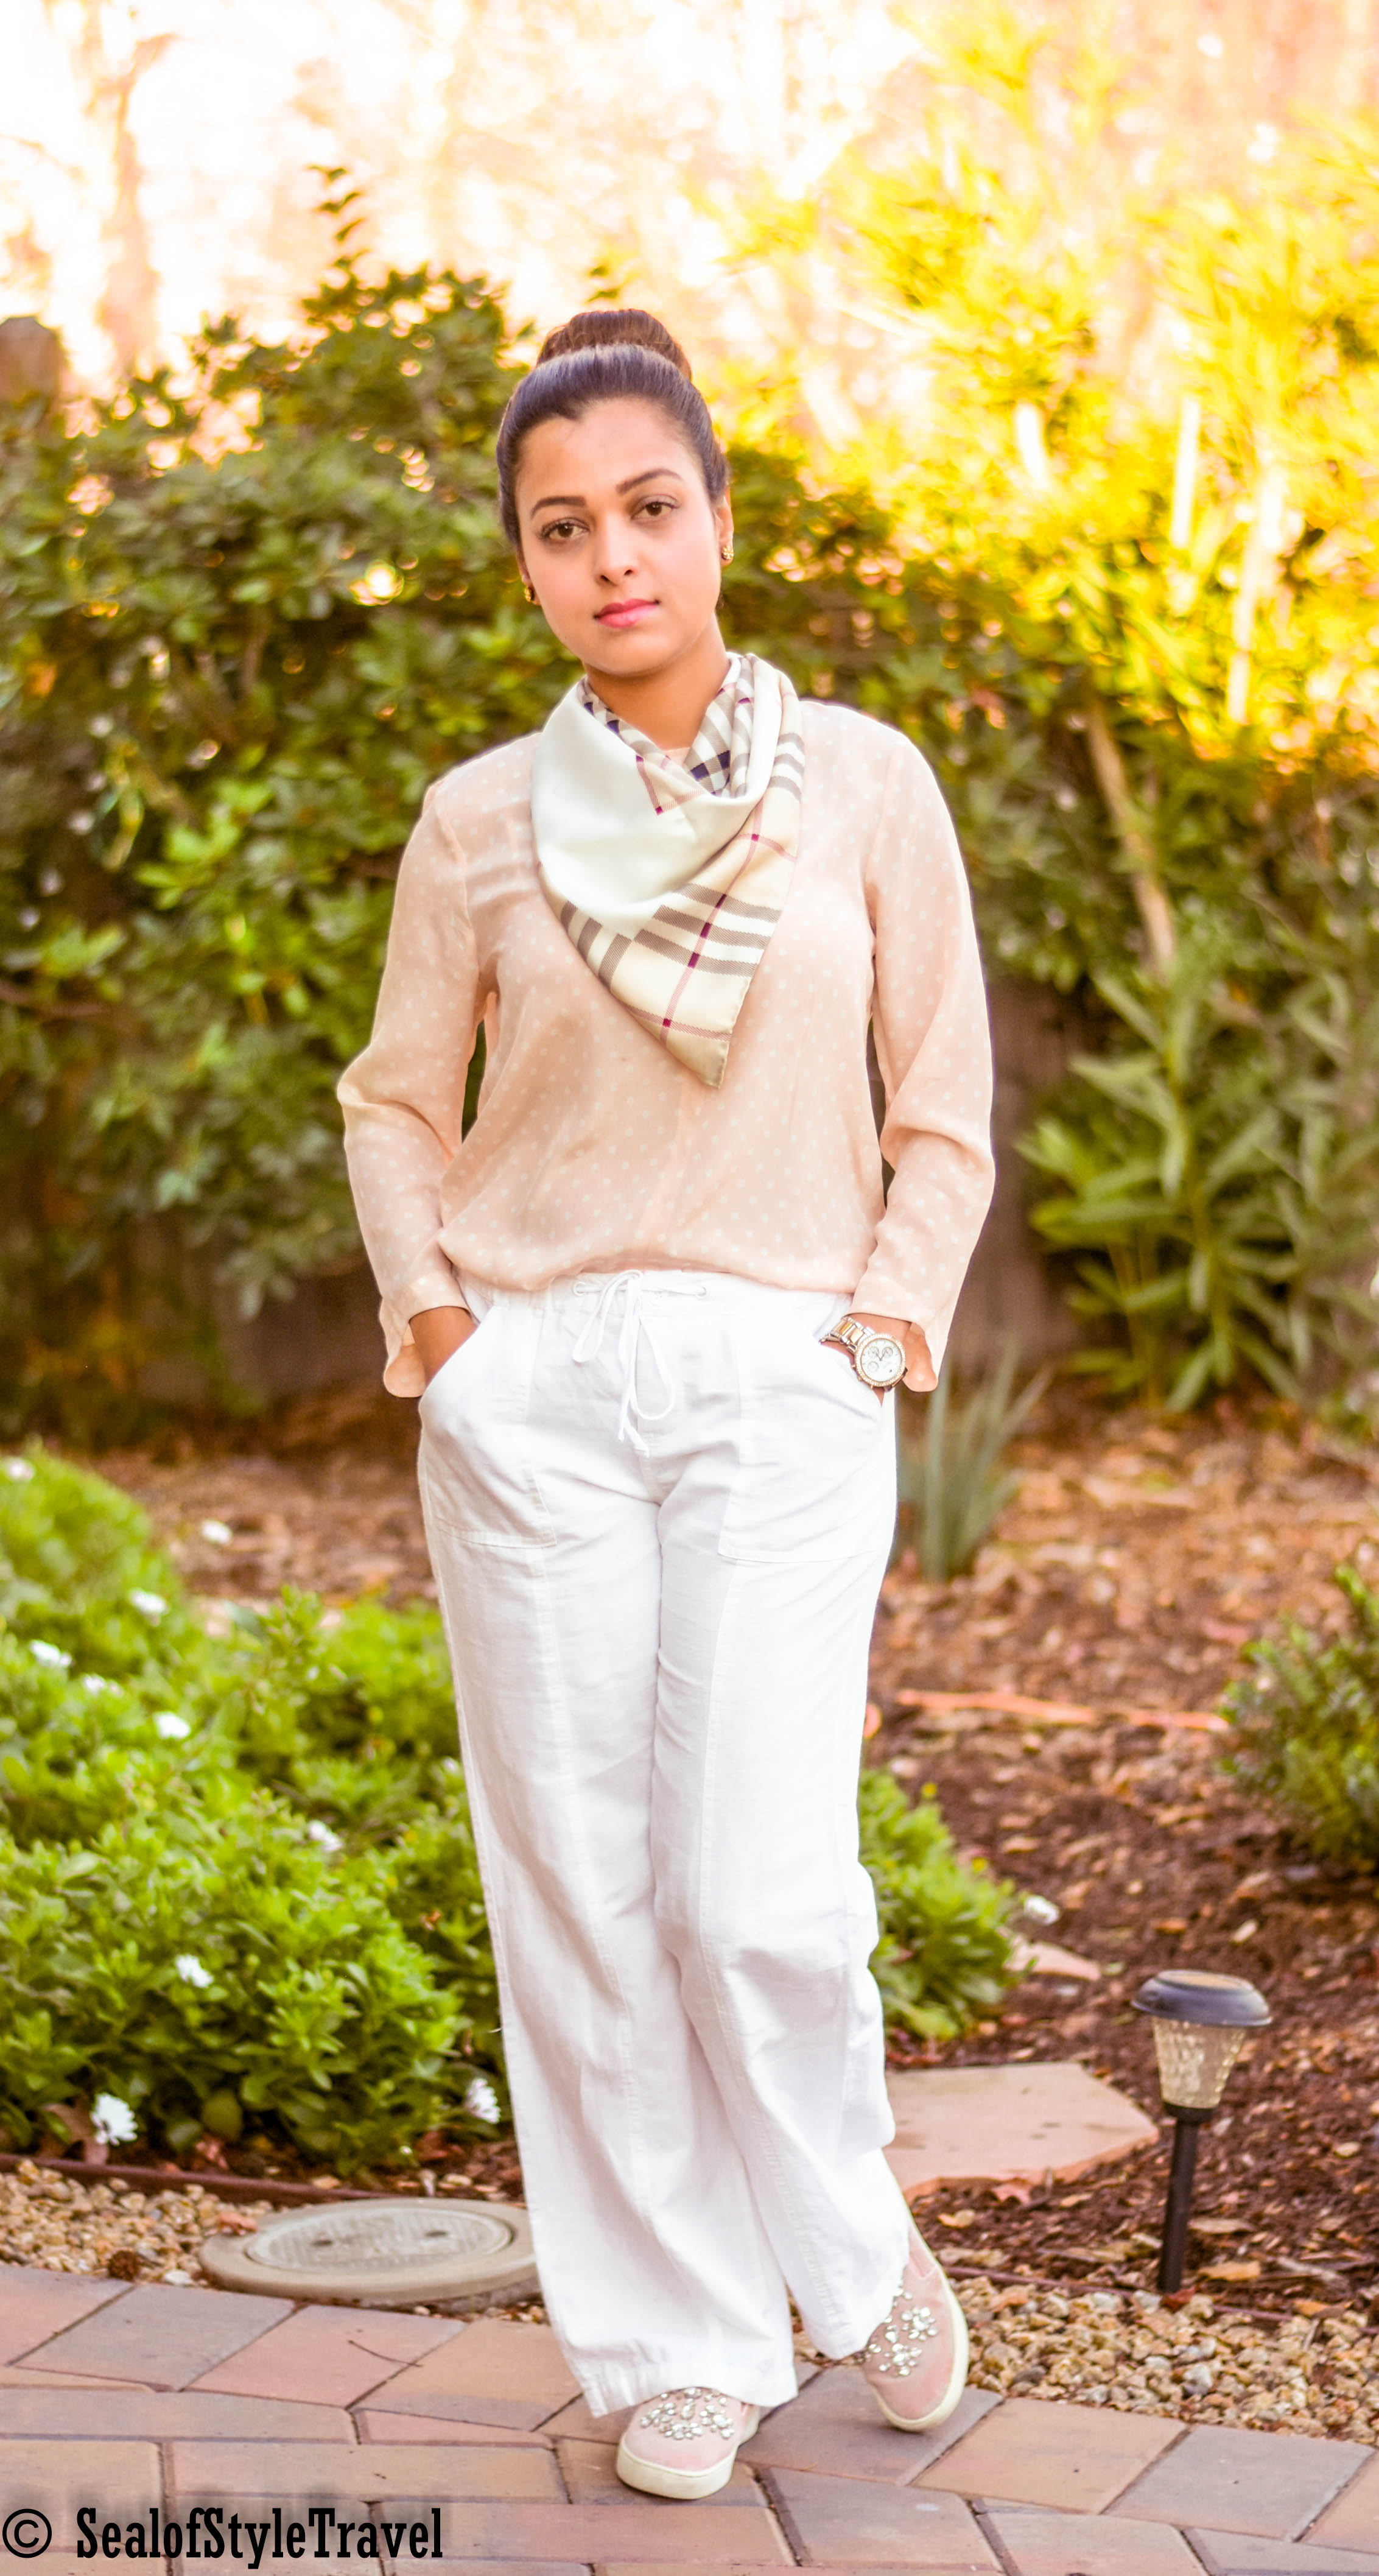 Top- click for similar ,  Pant- Old Navy ,  Scarf- Burberry ,  Shoes- Michael Kors